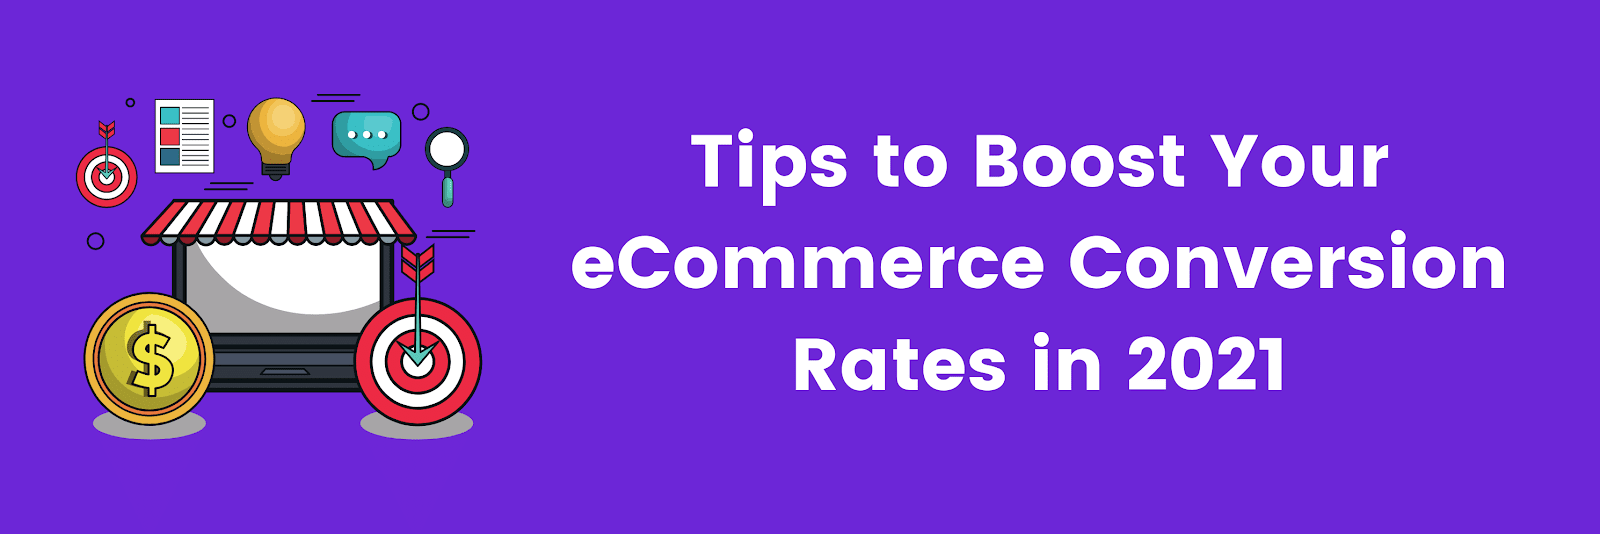 simple tips to boost your eCommerce conversion rate